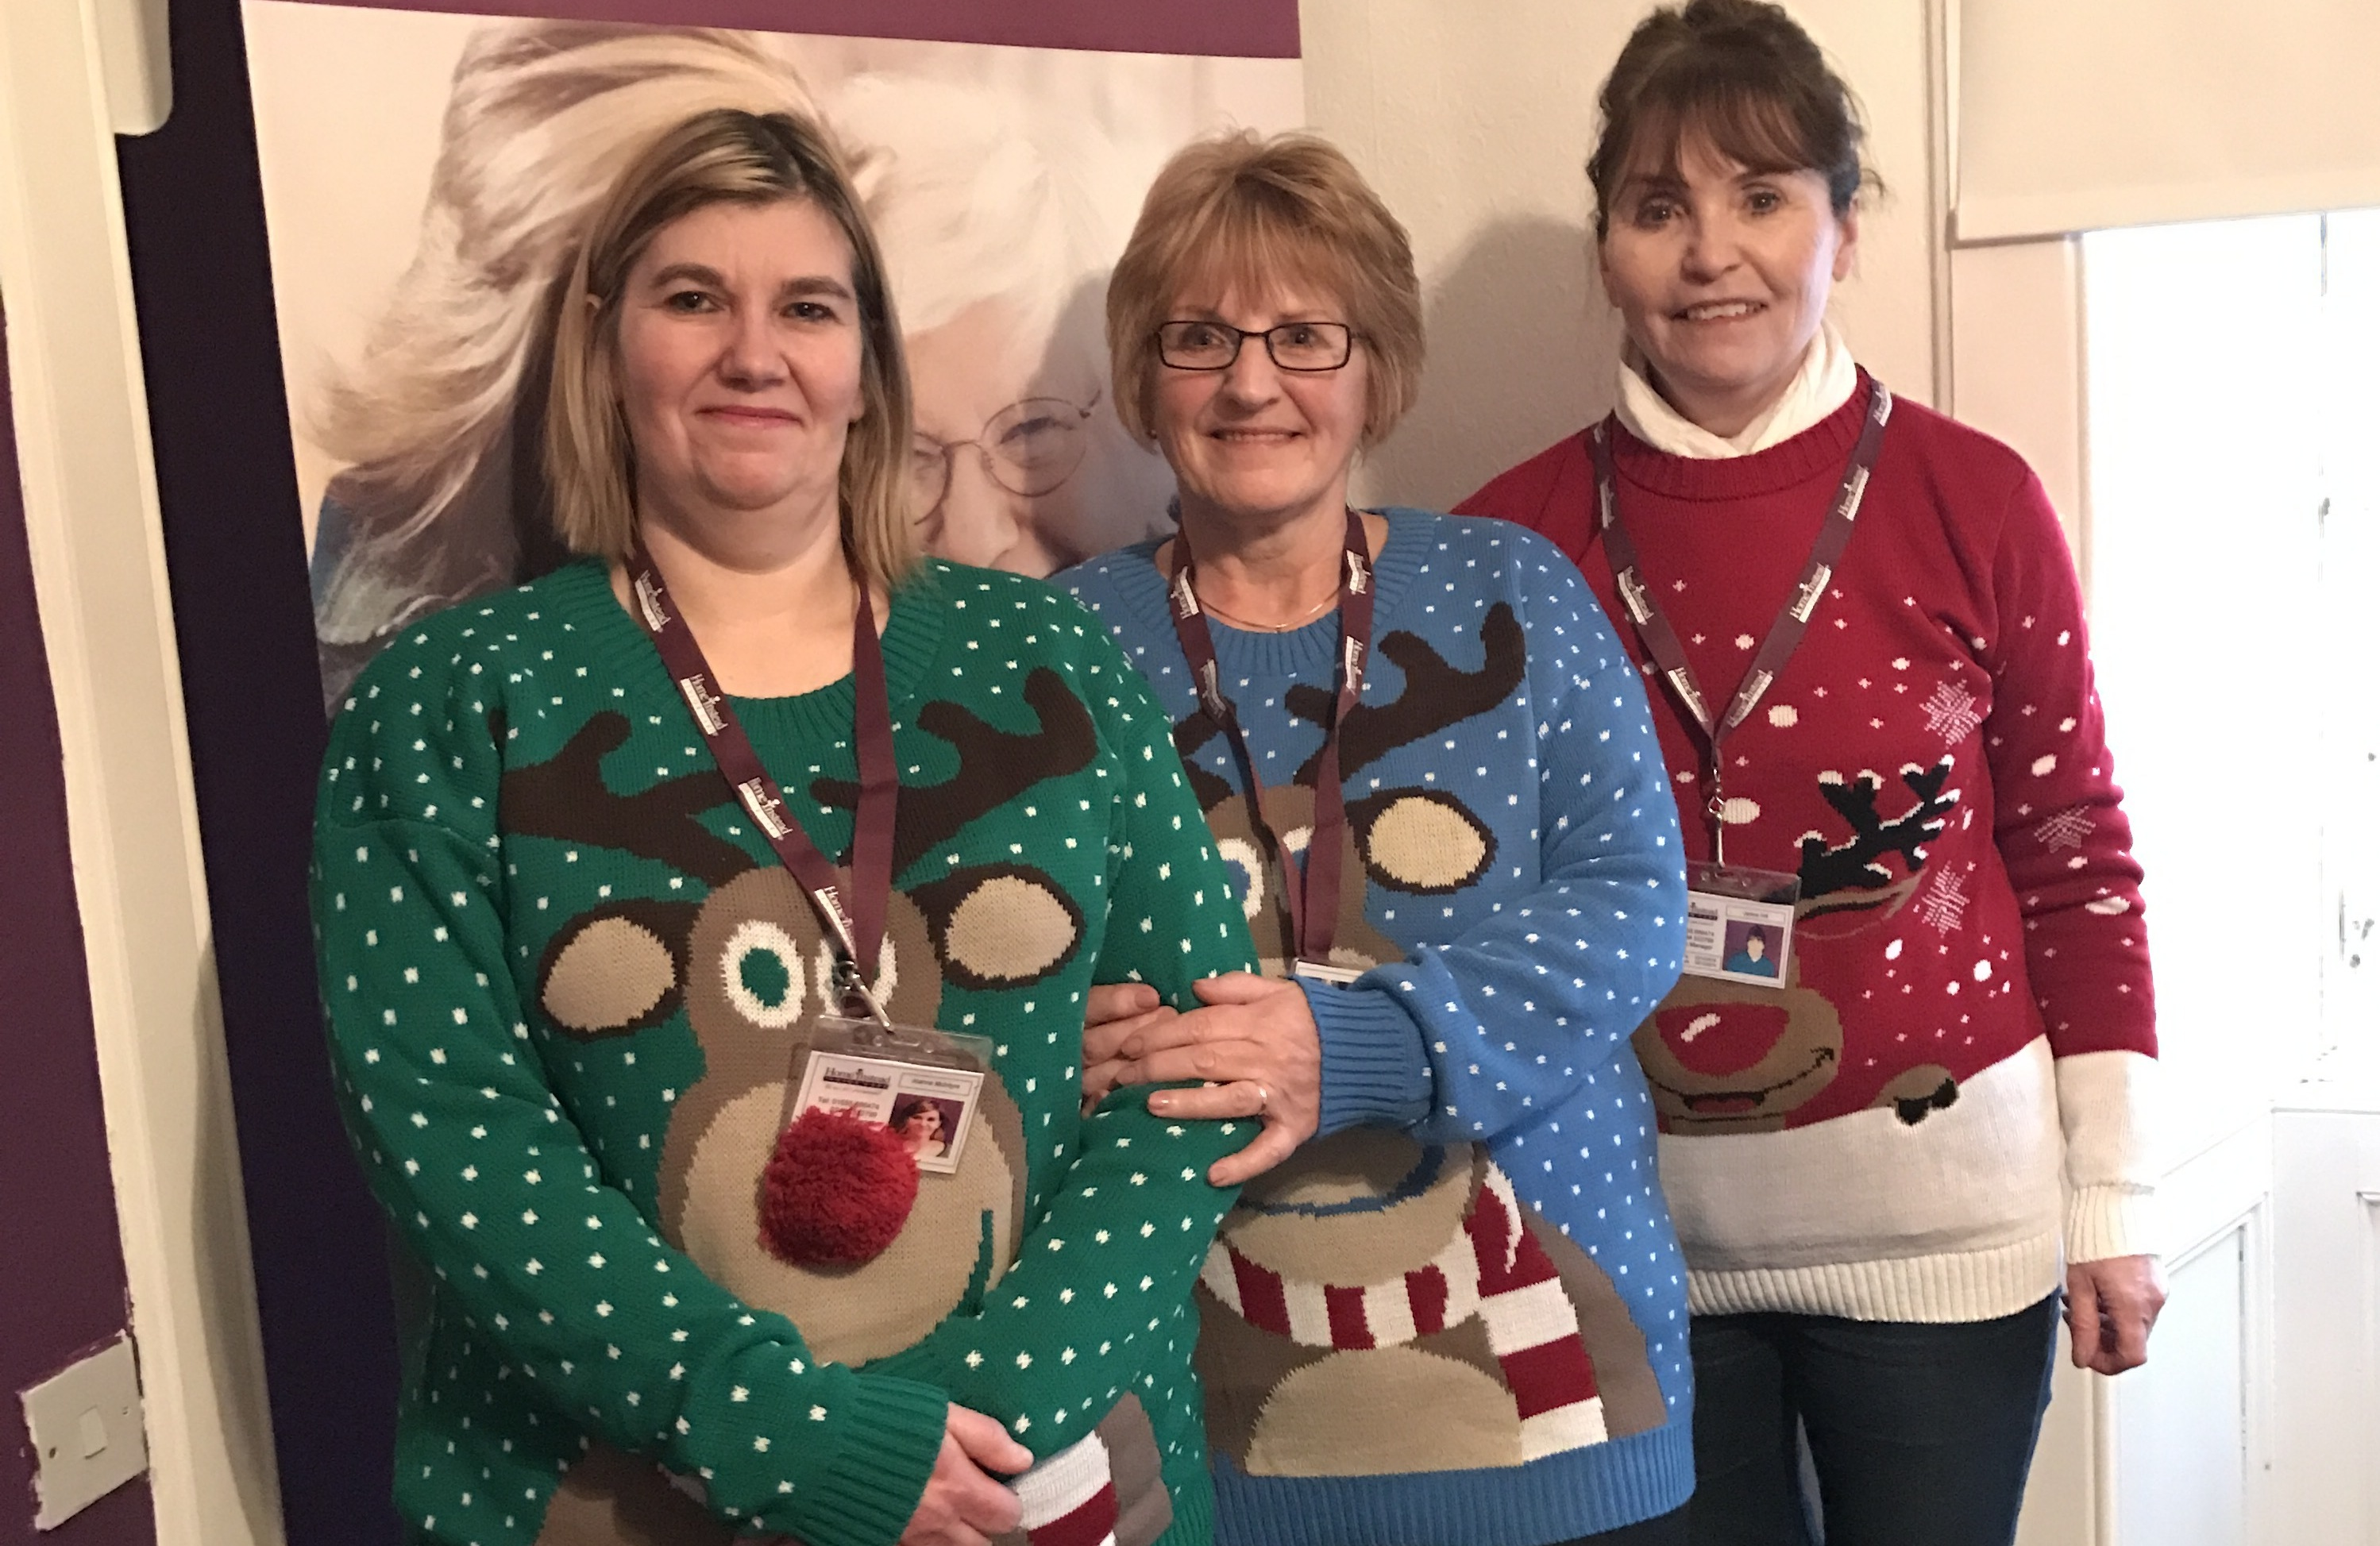 Merry Christmas from the team at South Lanarkshire